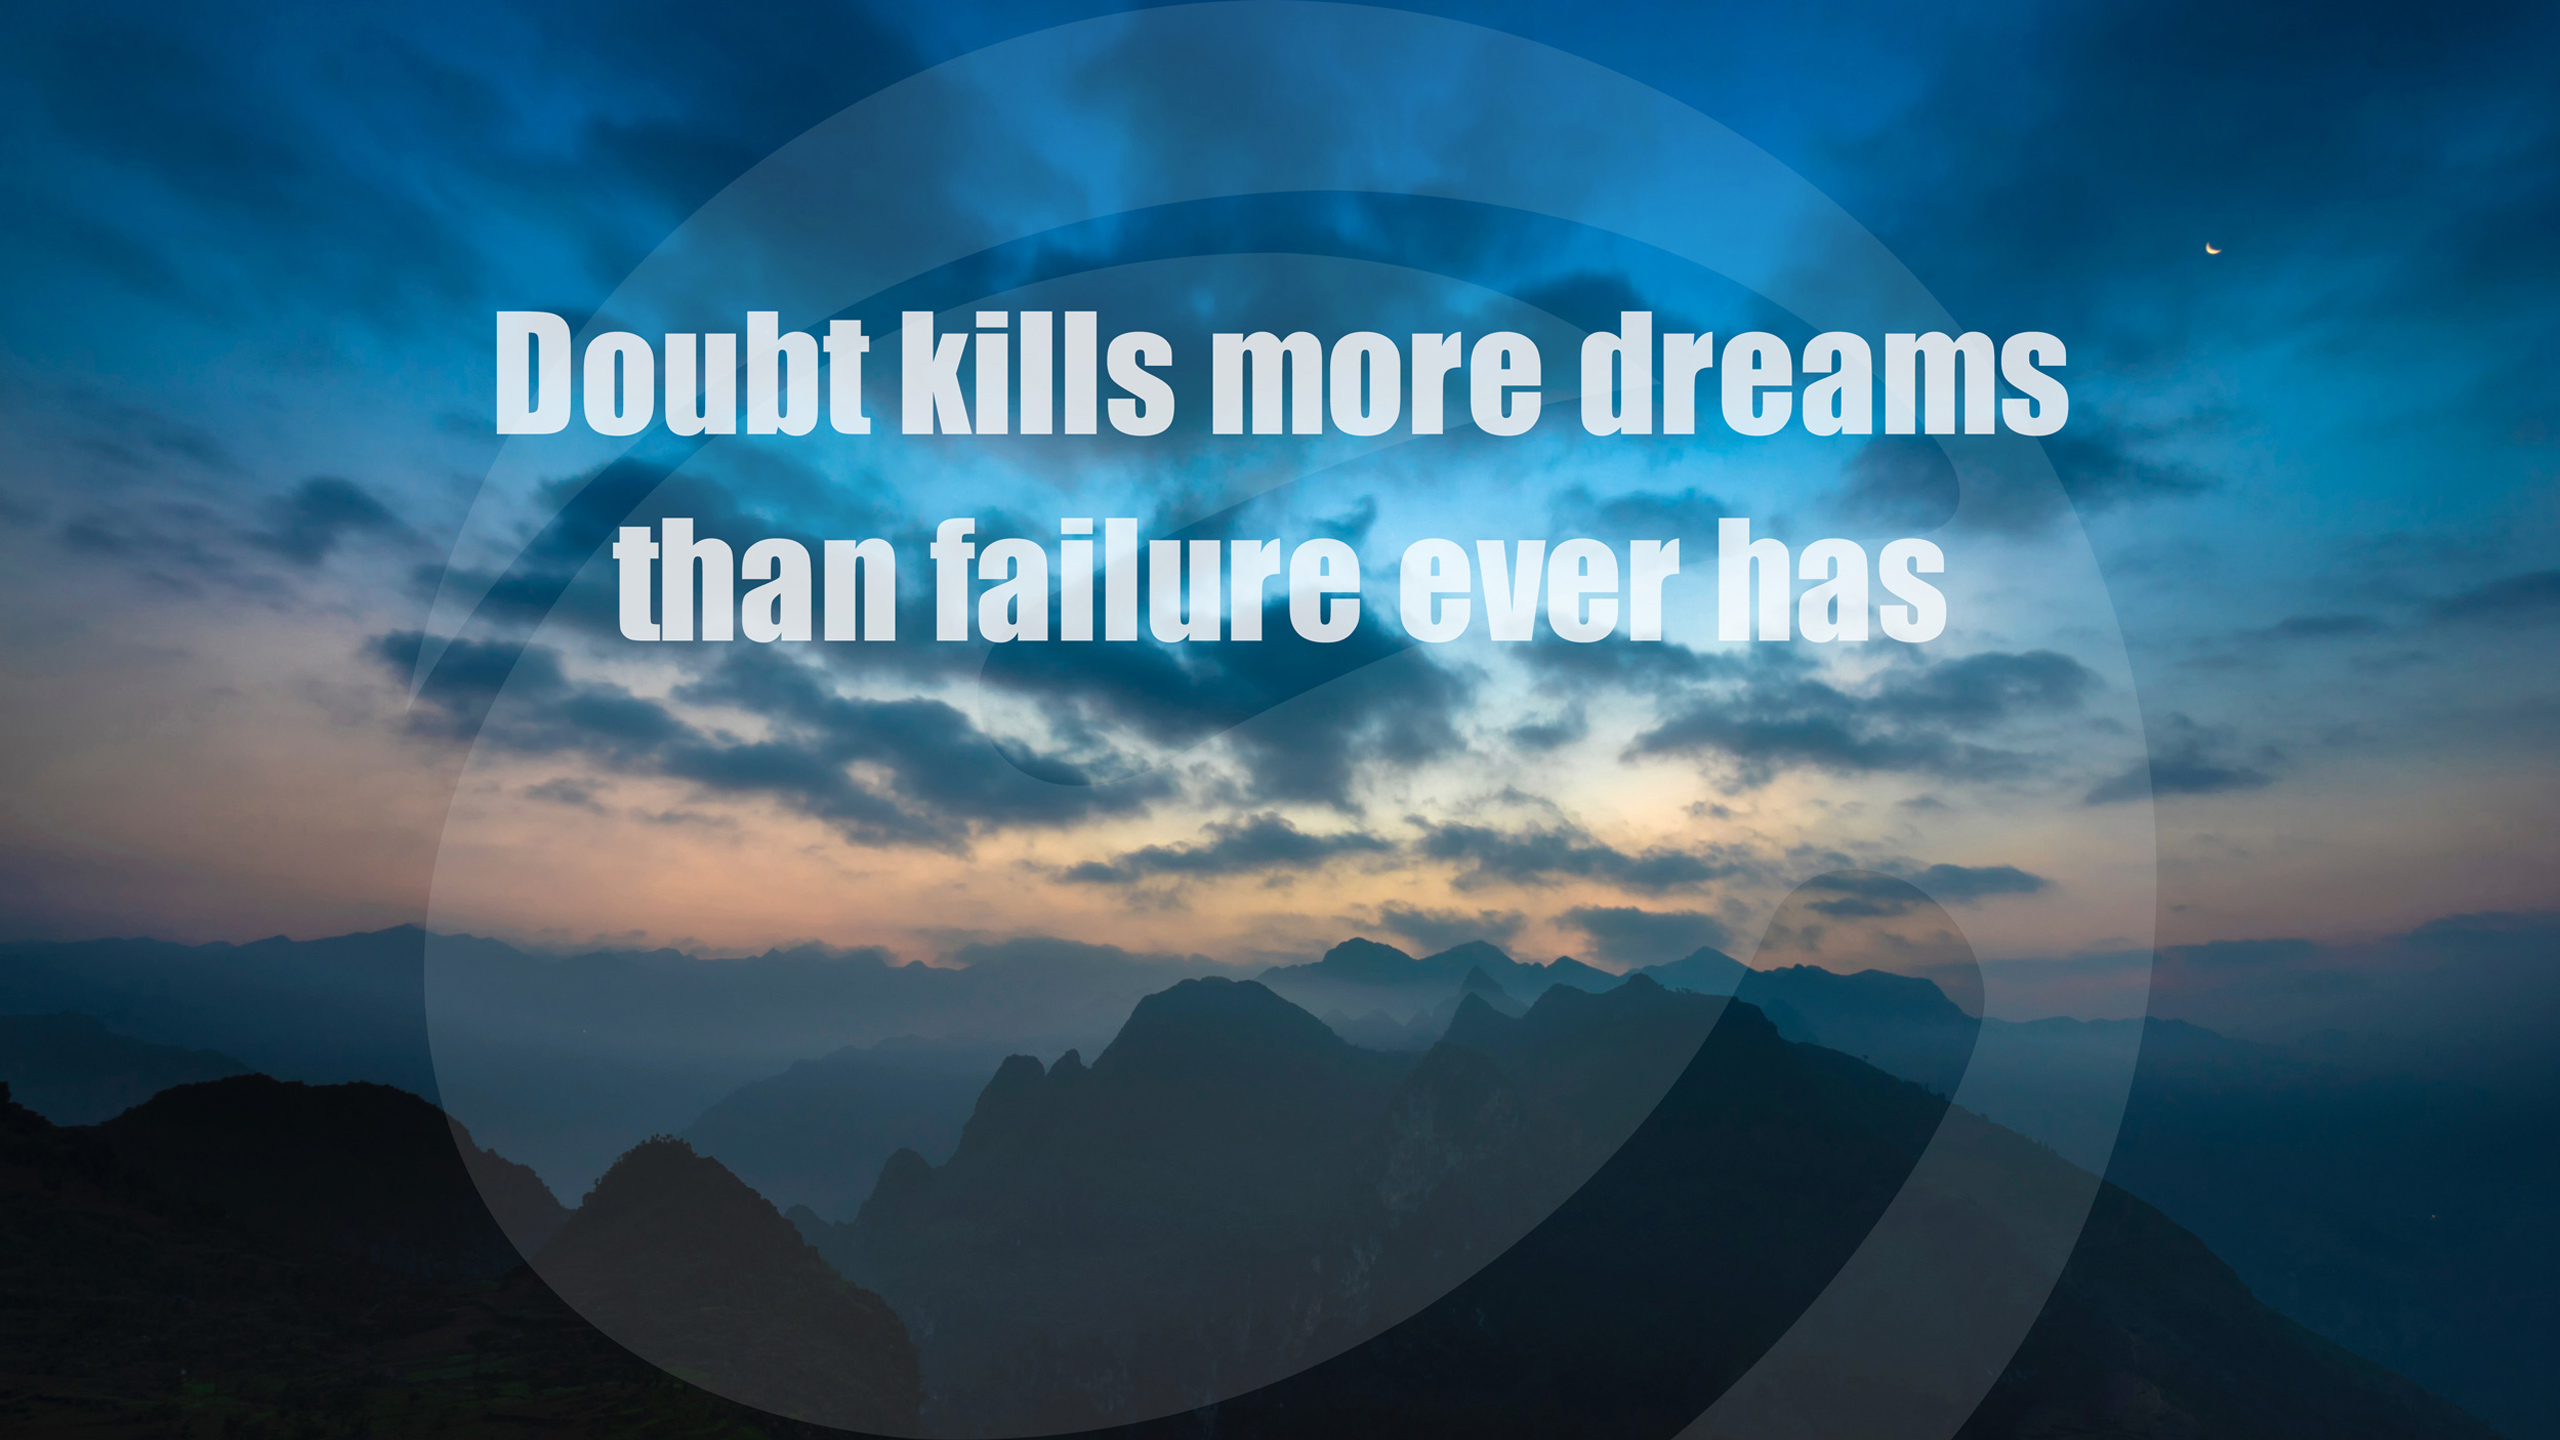 Dreams, Failure, Motivational, Inspirational, Popular quotes, HD, Typography